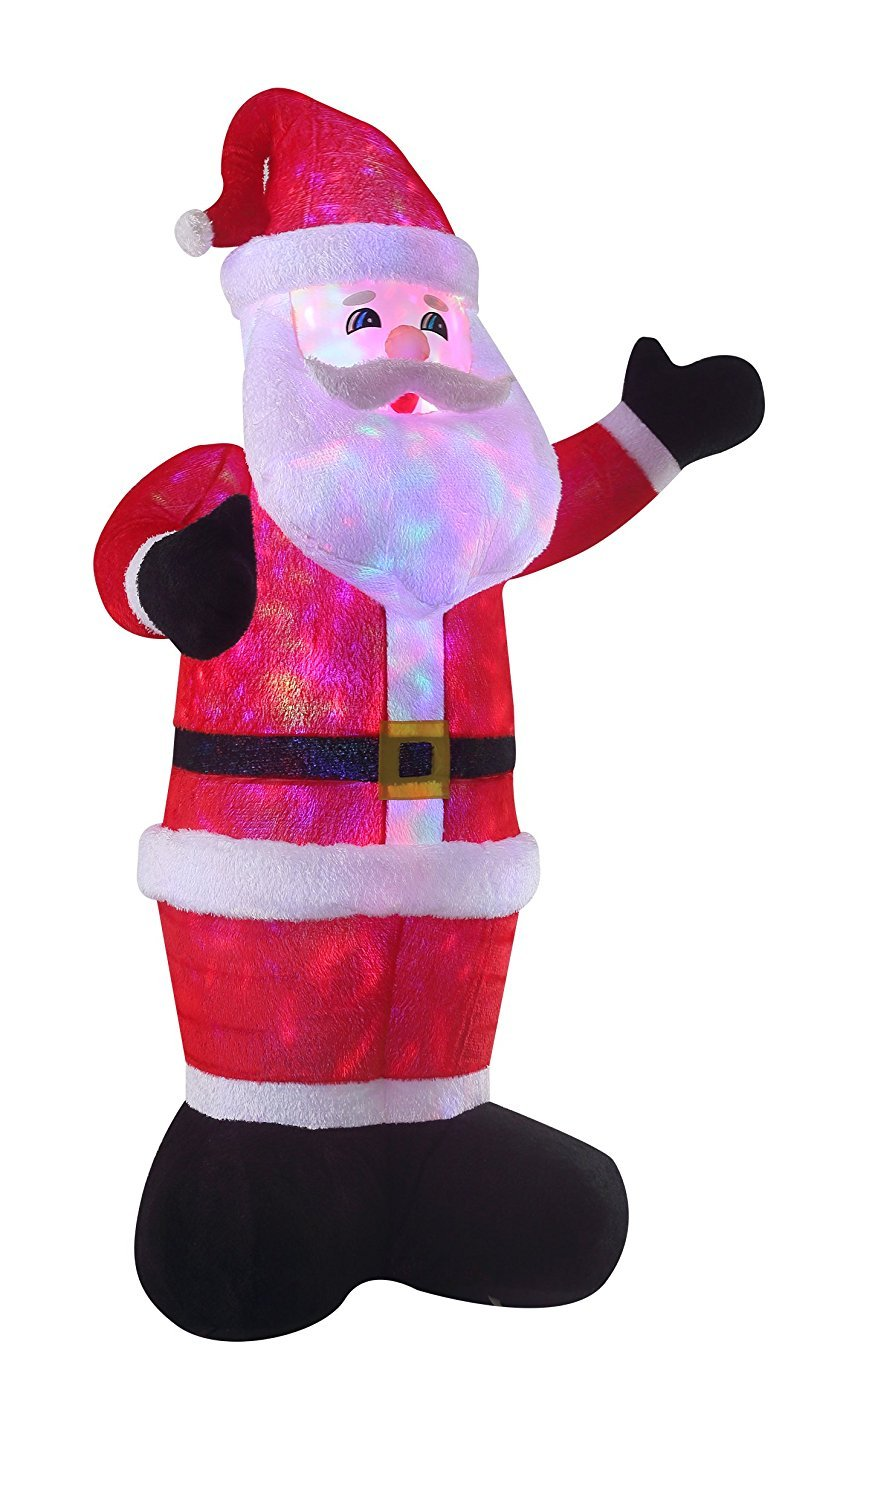 New 8 FT Inflatable Plush Santa Clause With 2pcs Disco Lights Christmas X'mas Decoration by Beyond Shop USA (Image #3)